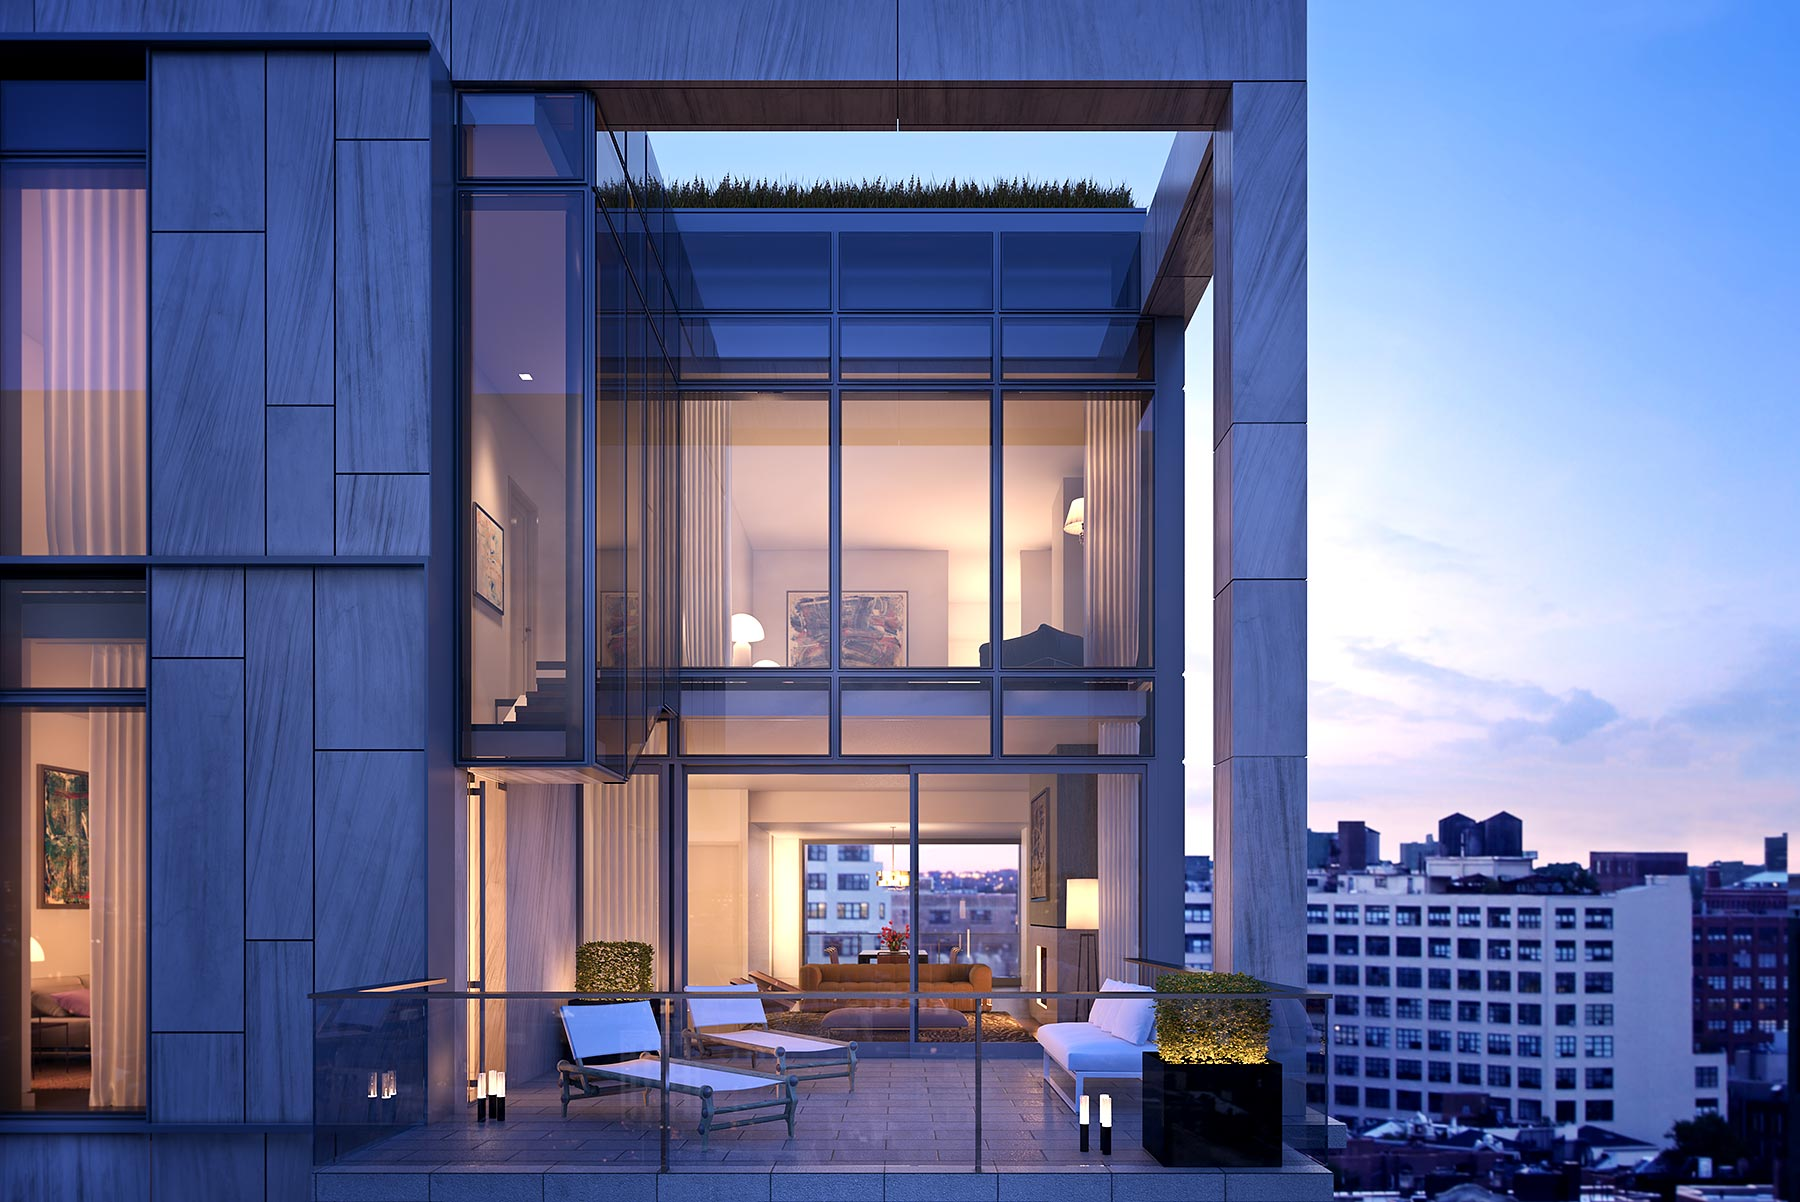 Unique & Spectacular Penthouses For Sale In Soho NYC | One Vandam NYC